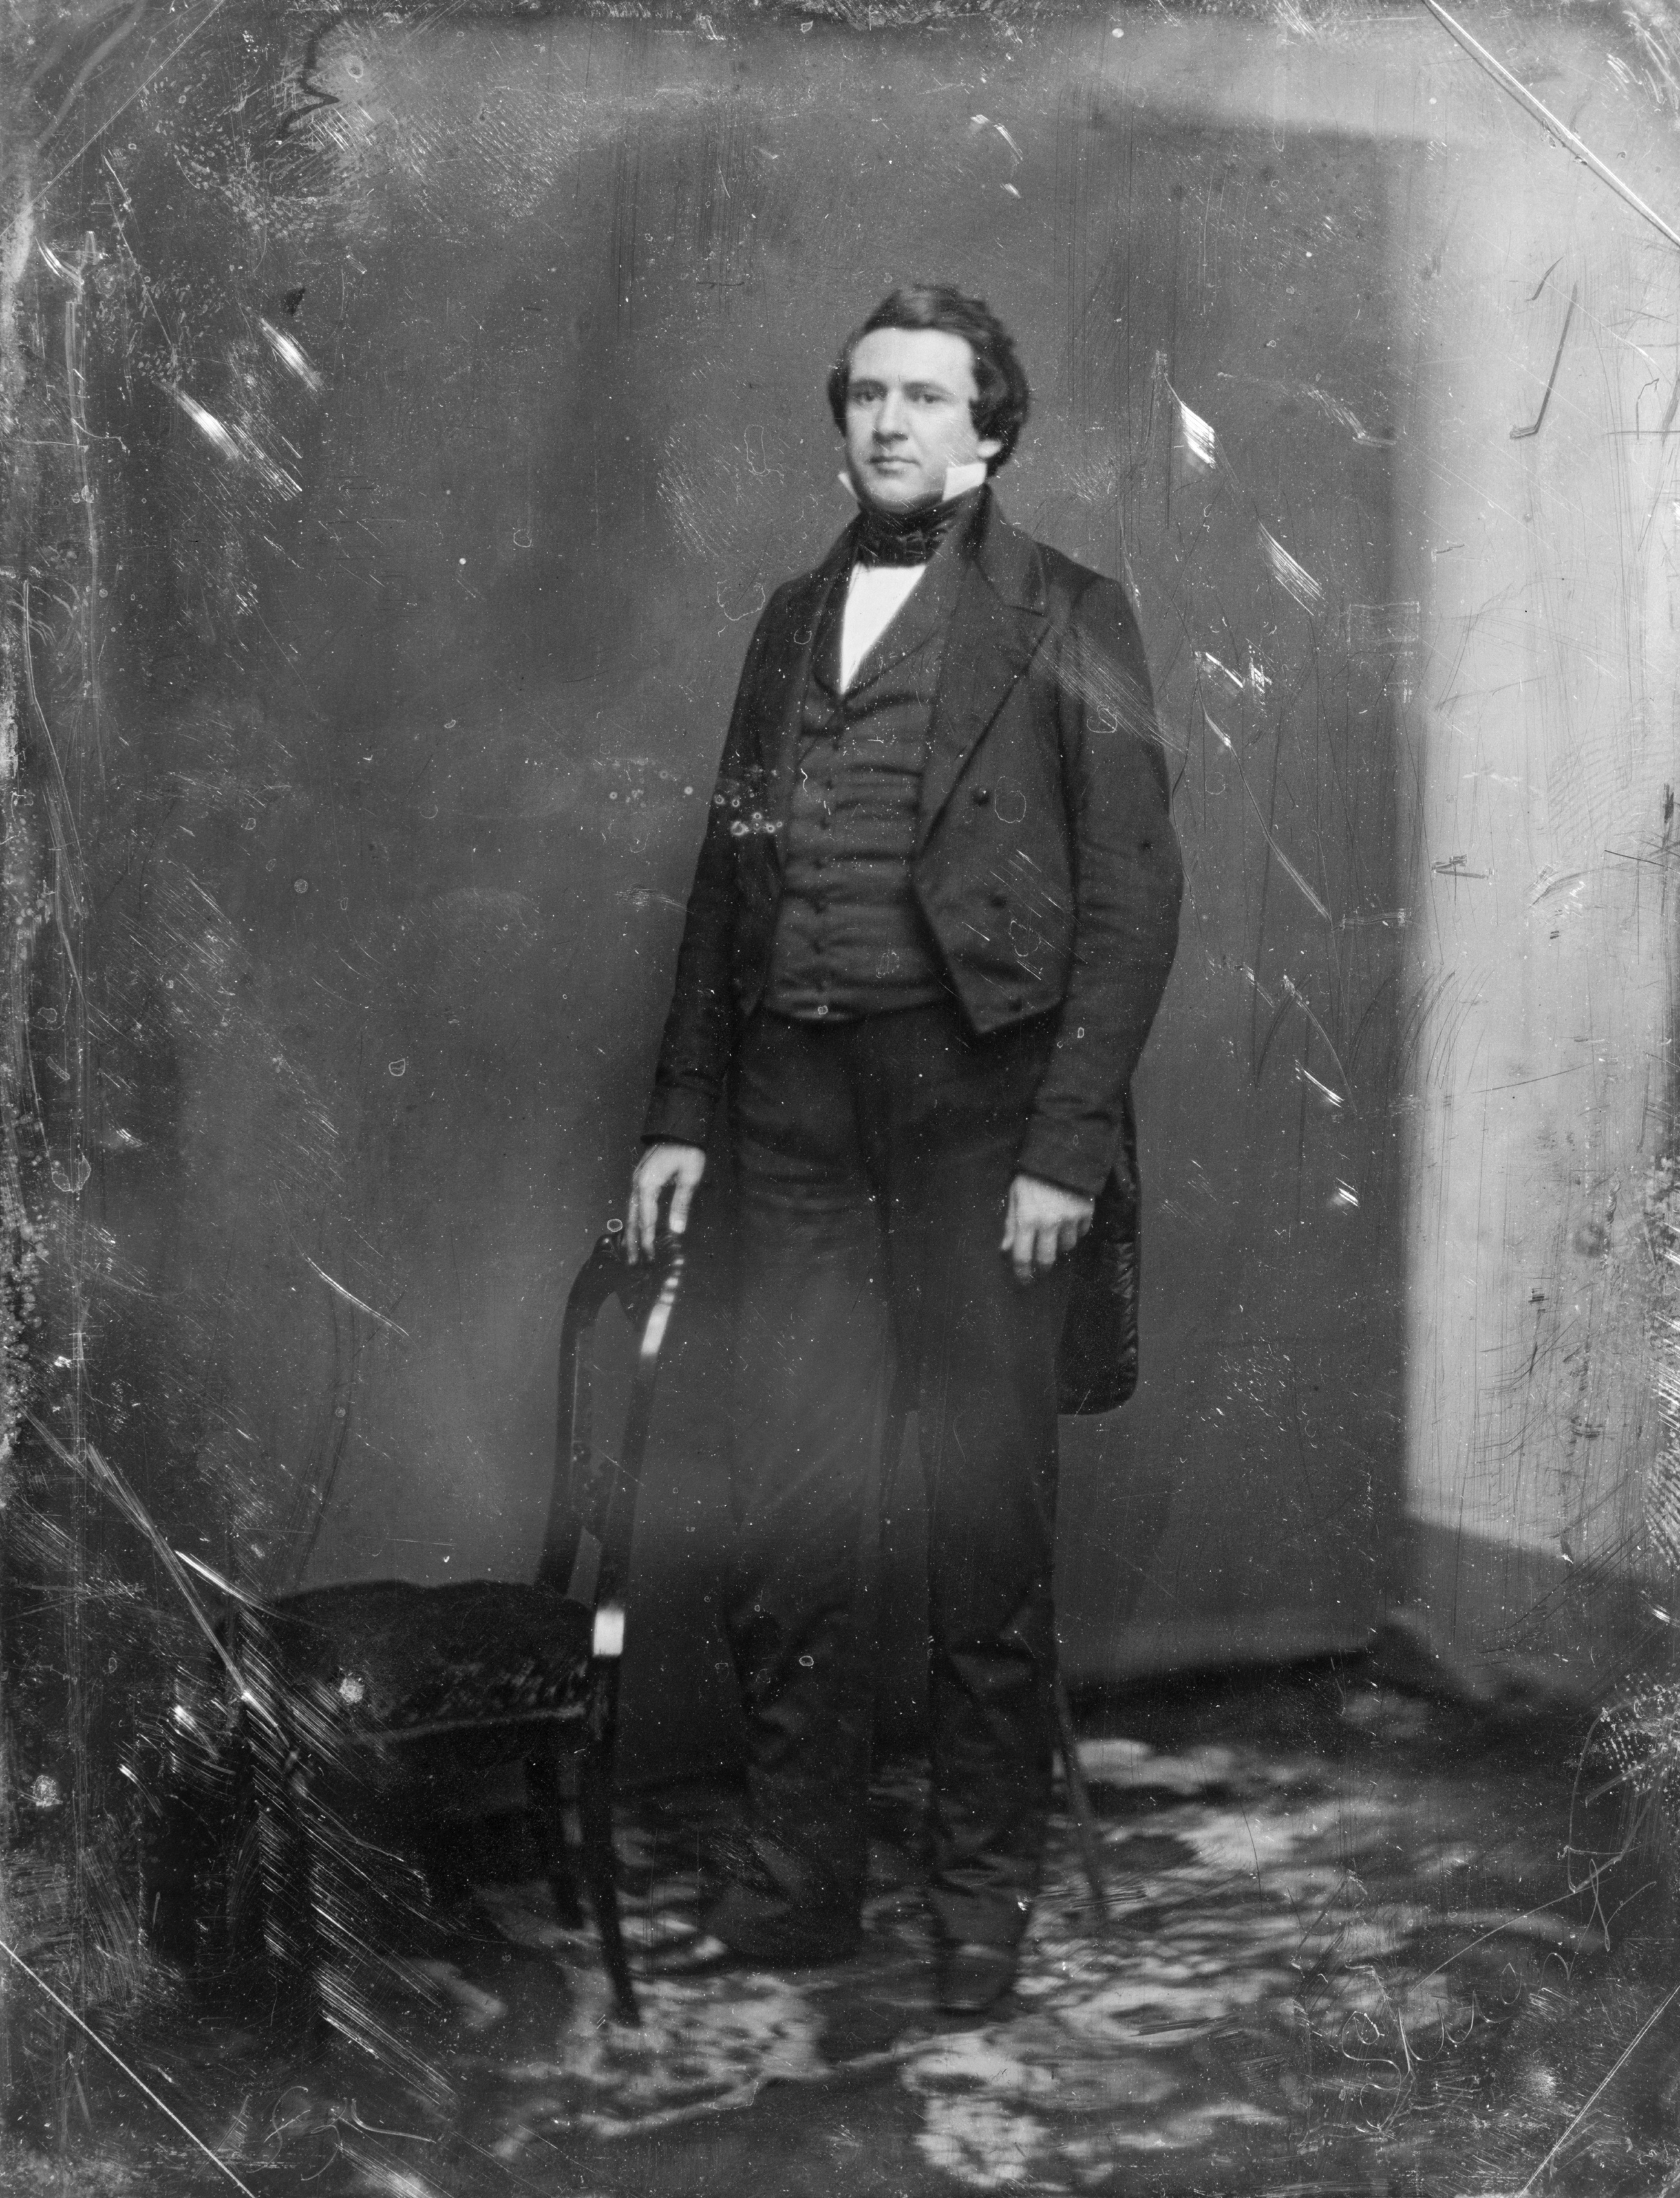 And Yet Another Joseph Smith Photograph